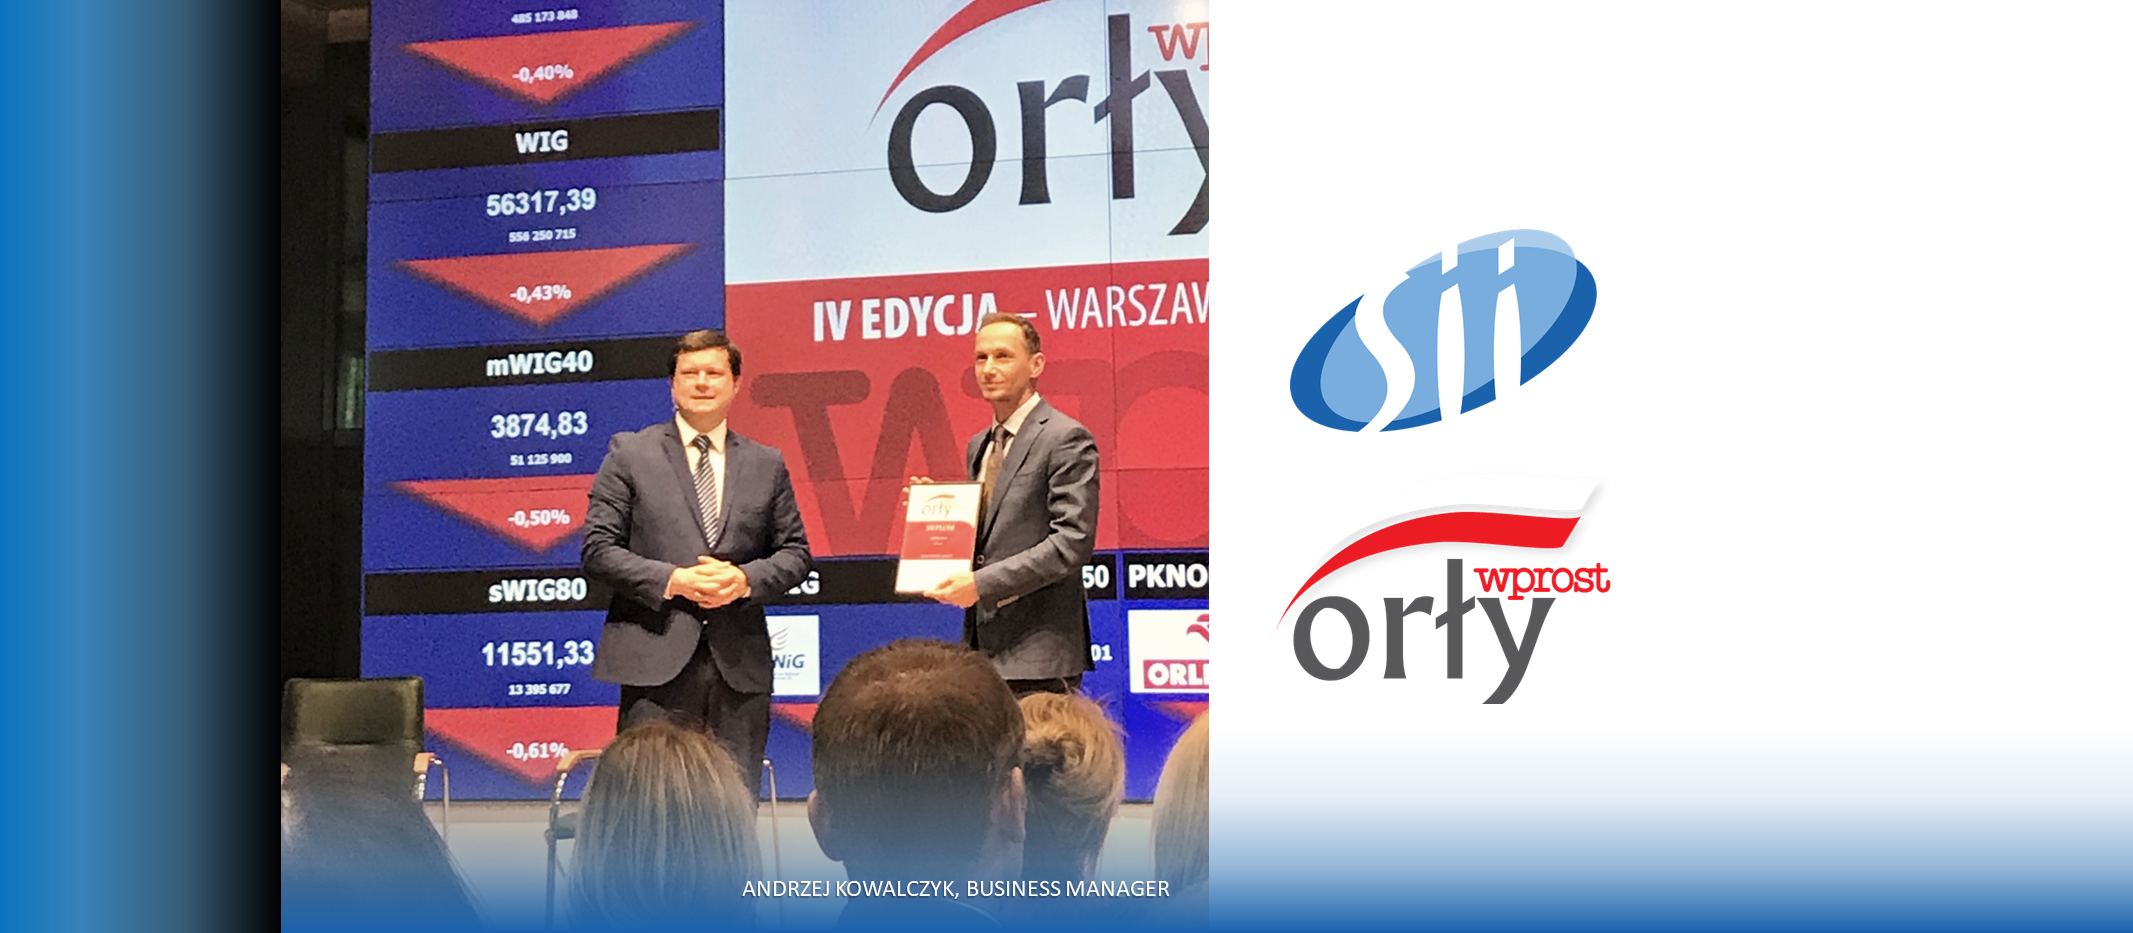 """The Eagles of """"Wprost"""" have been granted – Business Leader title for Sii Poland!"""